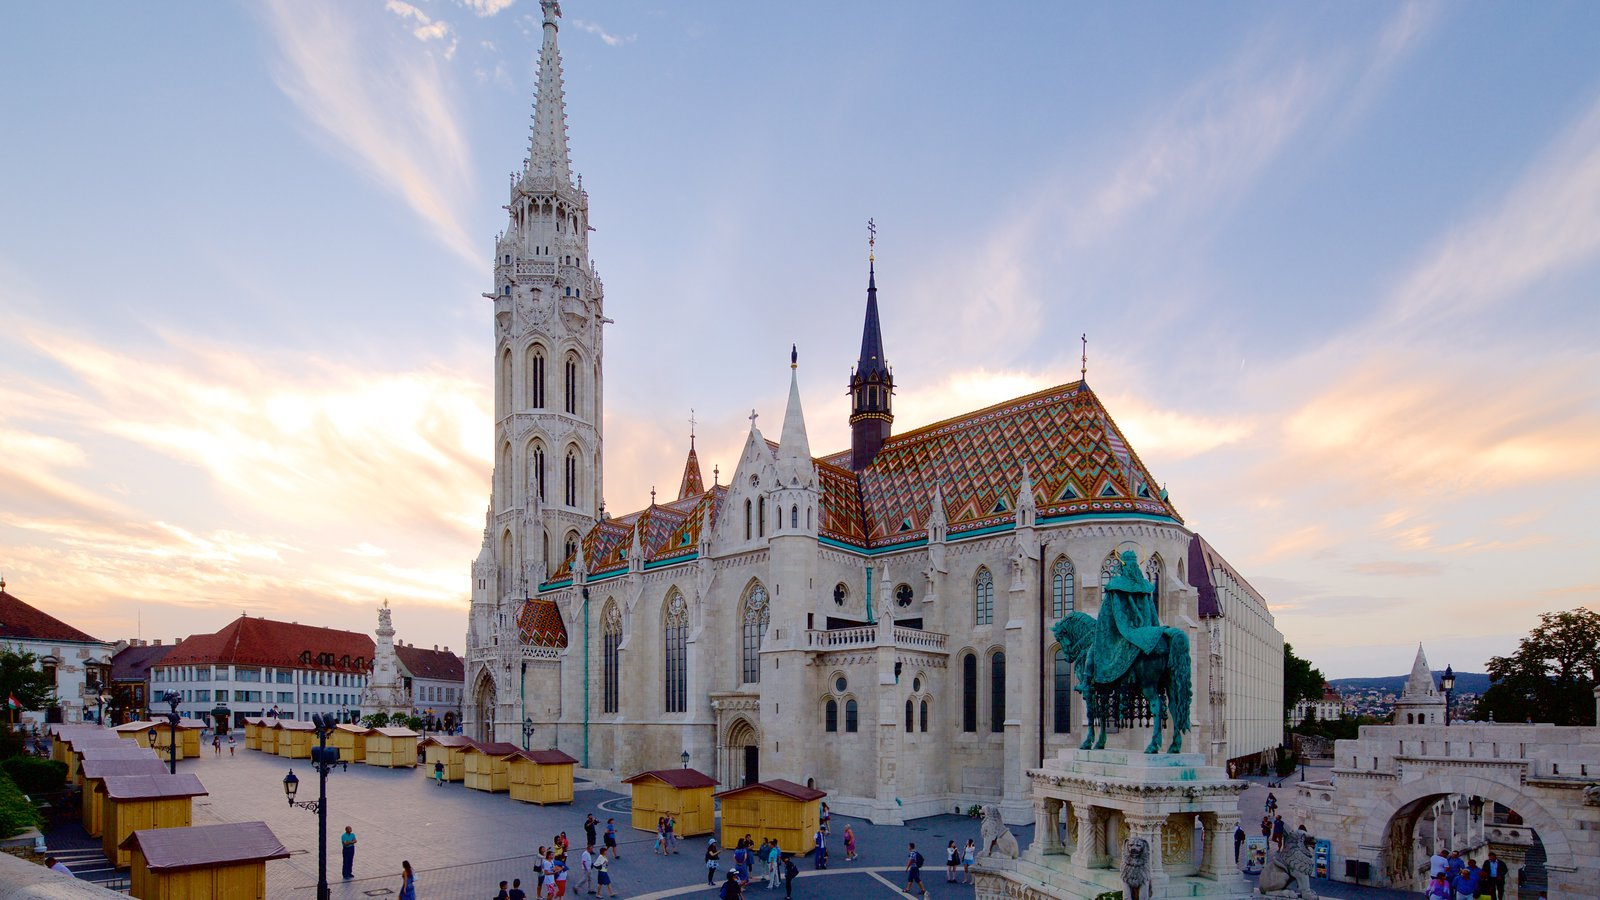 Matthias Church which includes heritage architecture, a church or cathedral and a sunset